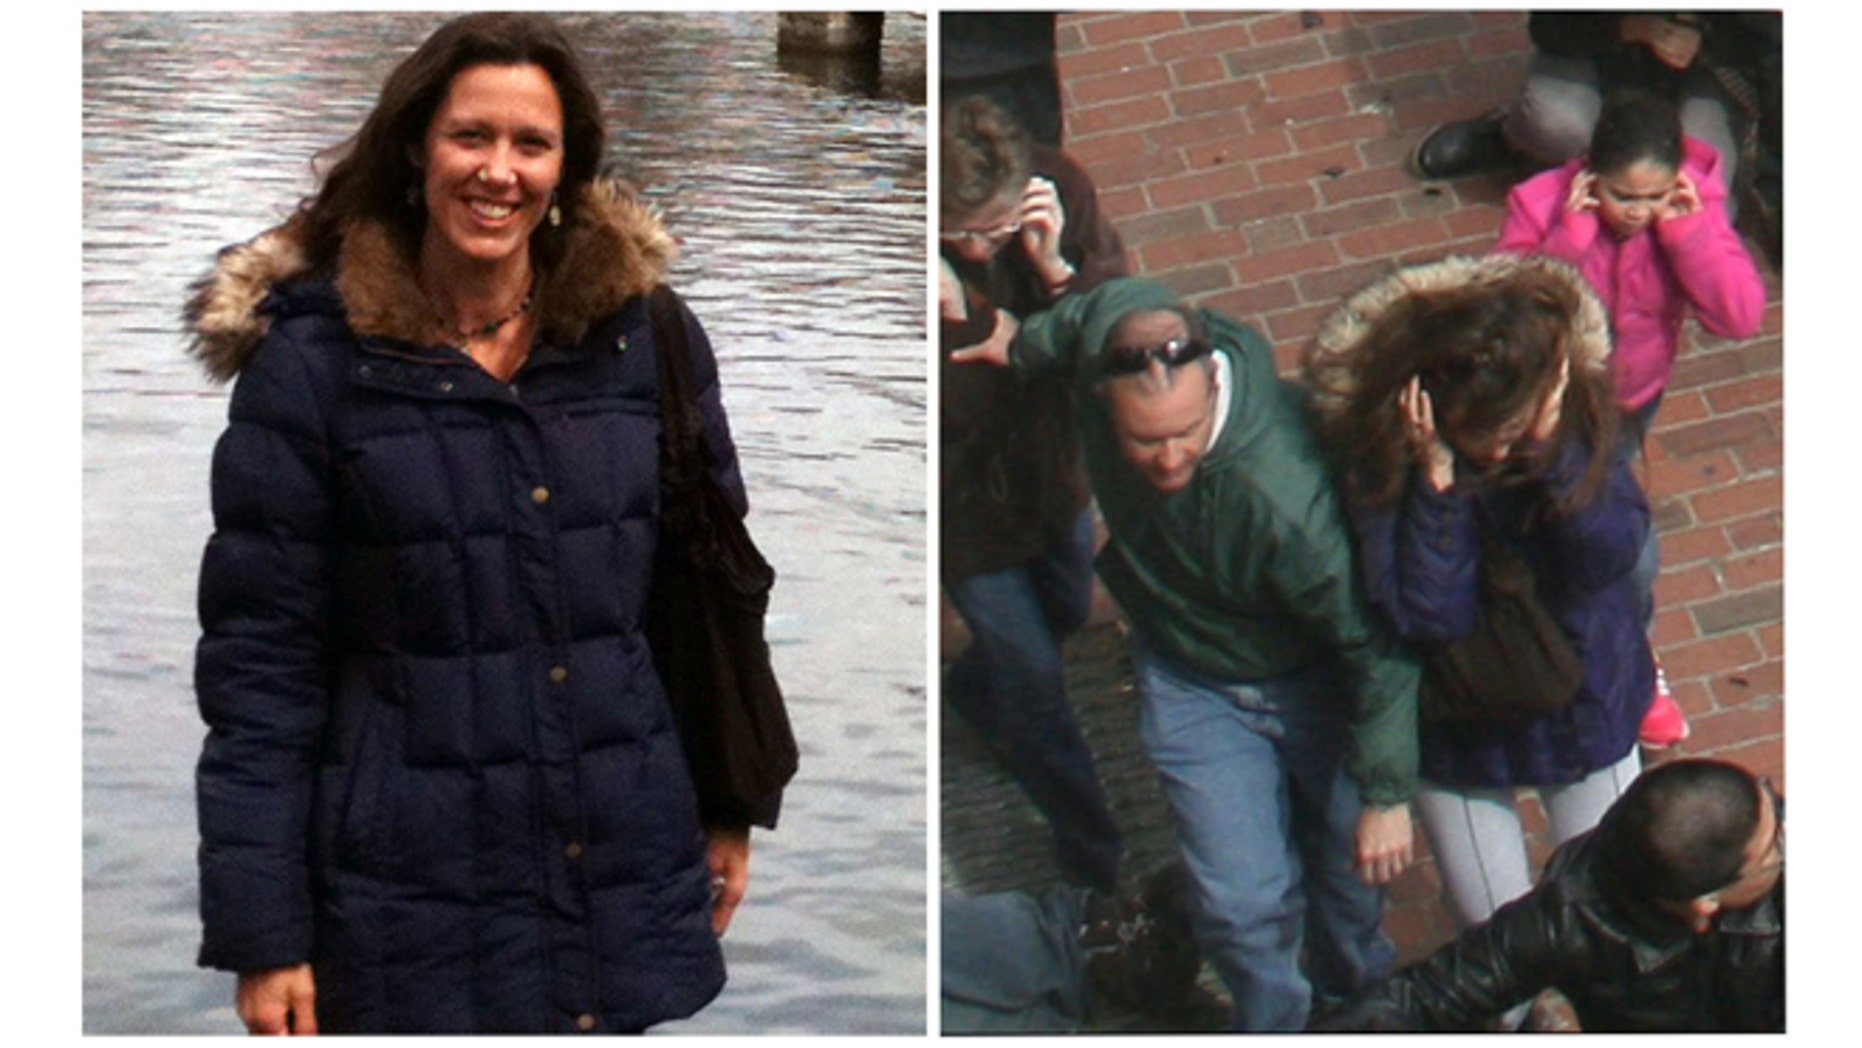 This combination photos shows, left, Amy Berti, in a photo taken by her husband, Joe Bertie in Boston, on Sunday, April 14, 2013, and right, an Associated Press file photo that shows Amy Berti, center, in the same coat, running from the first explosion at the finish line of the Boston Marathon on Monday, April 15, 2013.